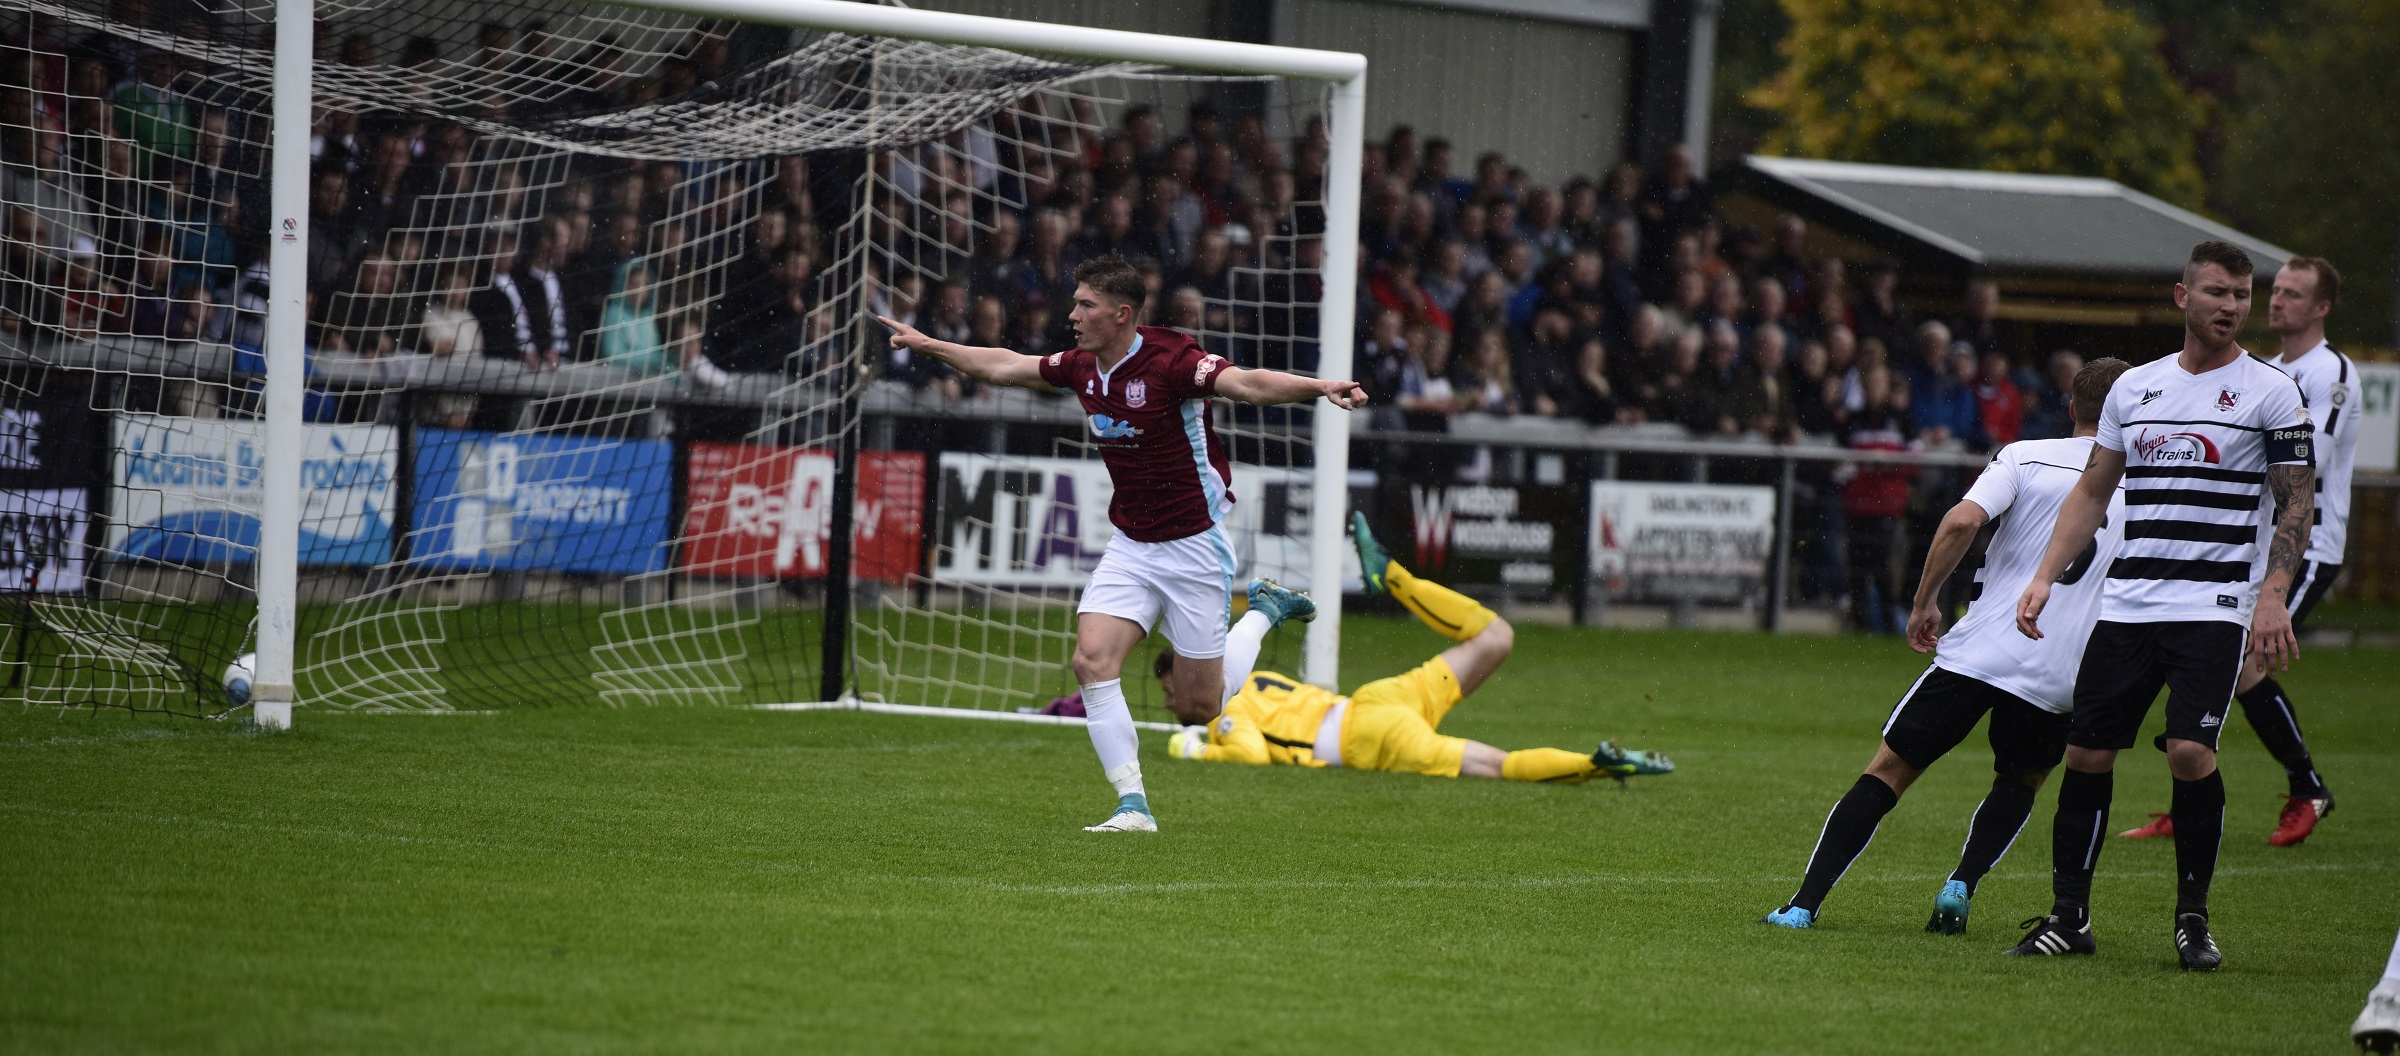 Match Preview: South Shields vs Clitheroe, EVO-STIK North